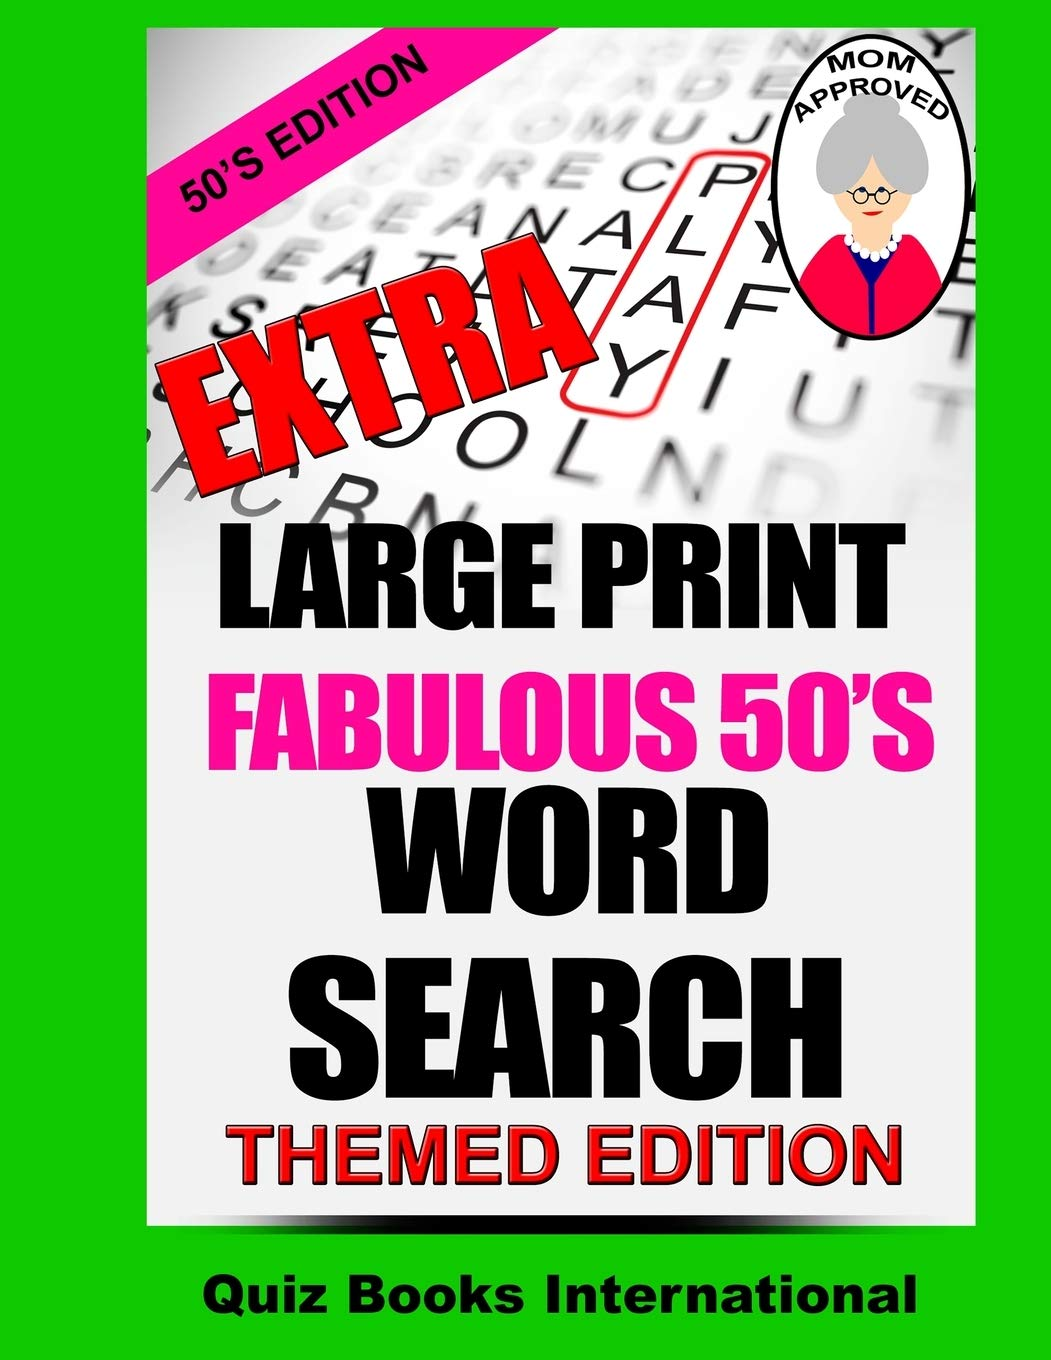 Download Extra Large Print Word Search Fabulous 50's Edition 